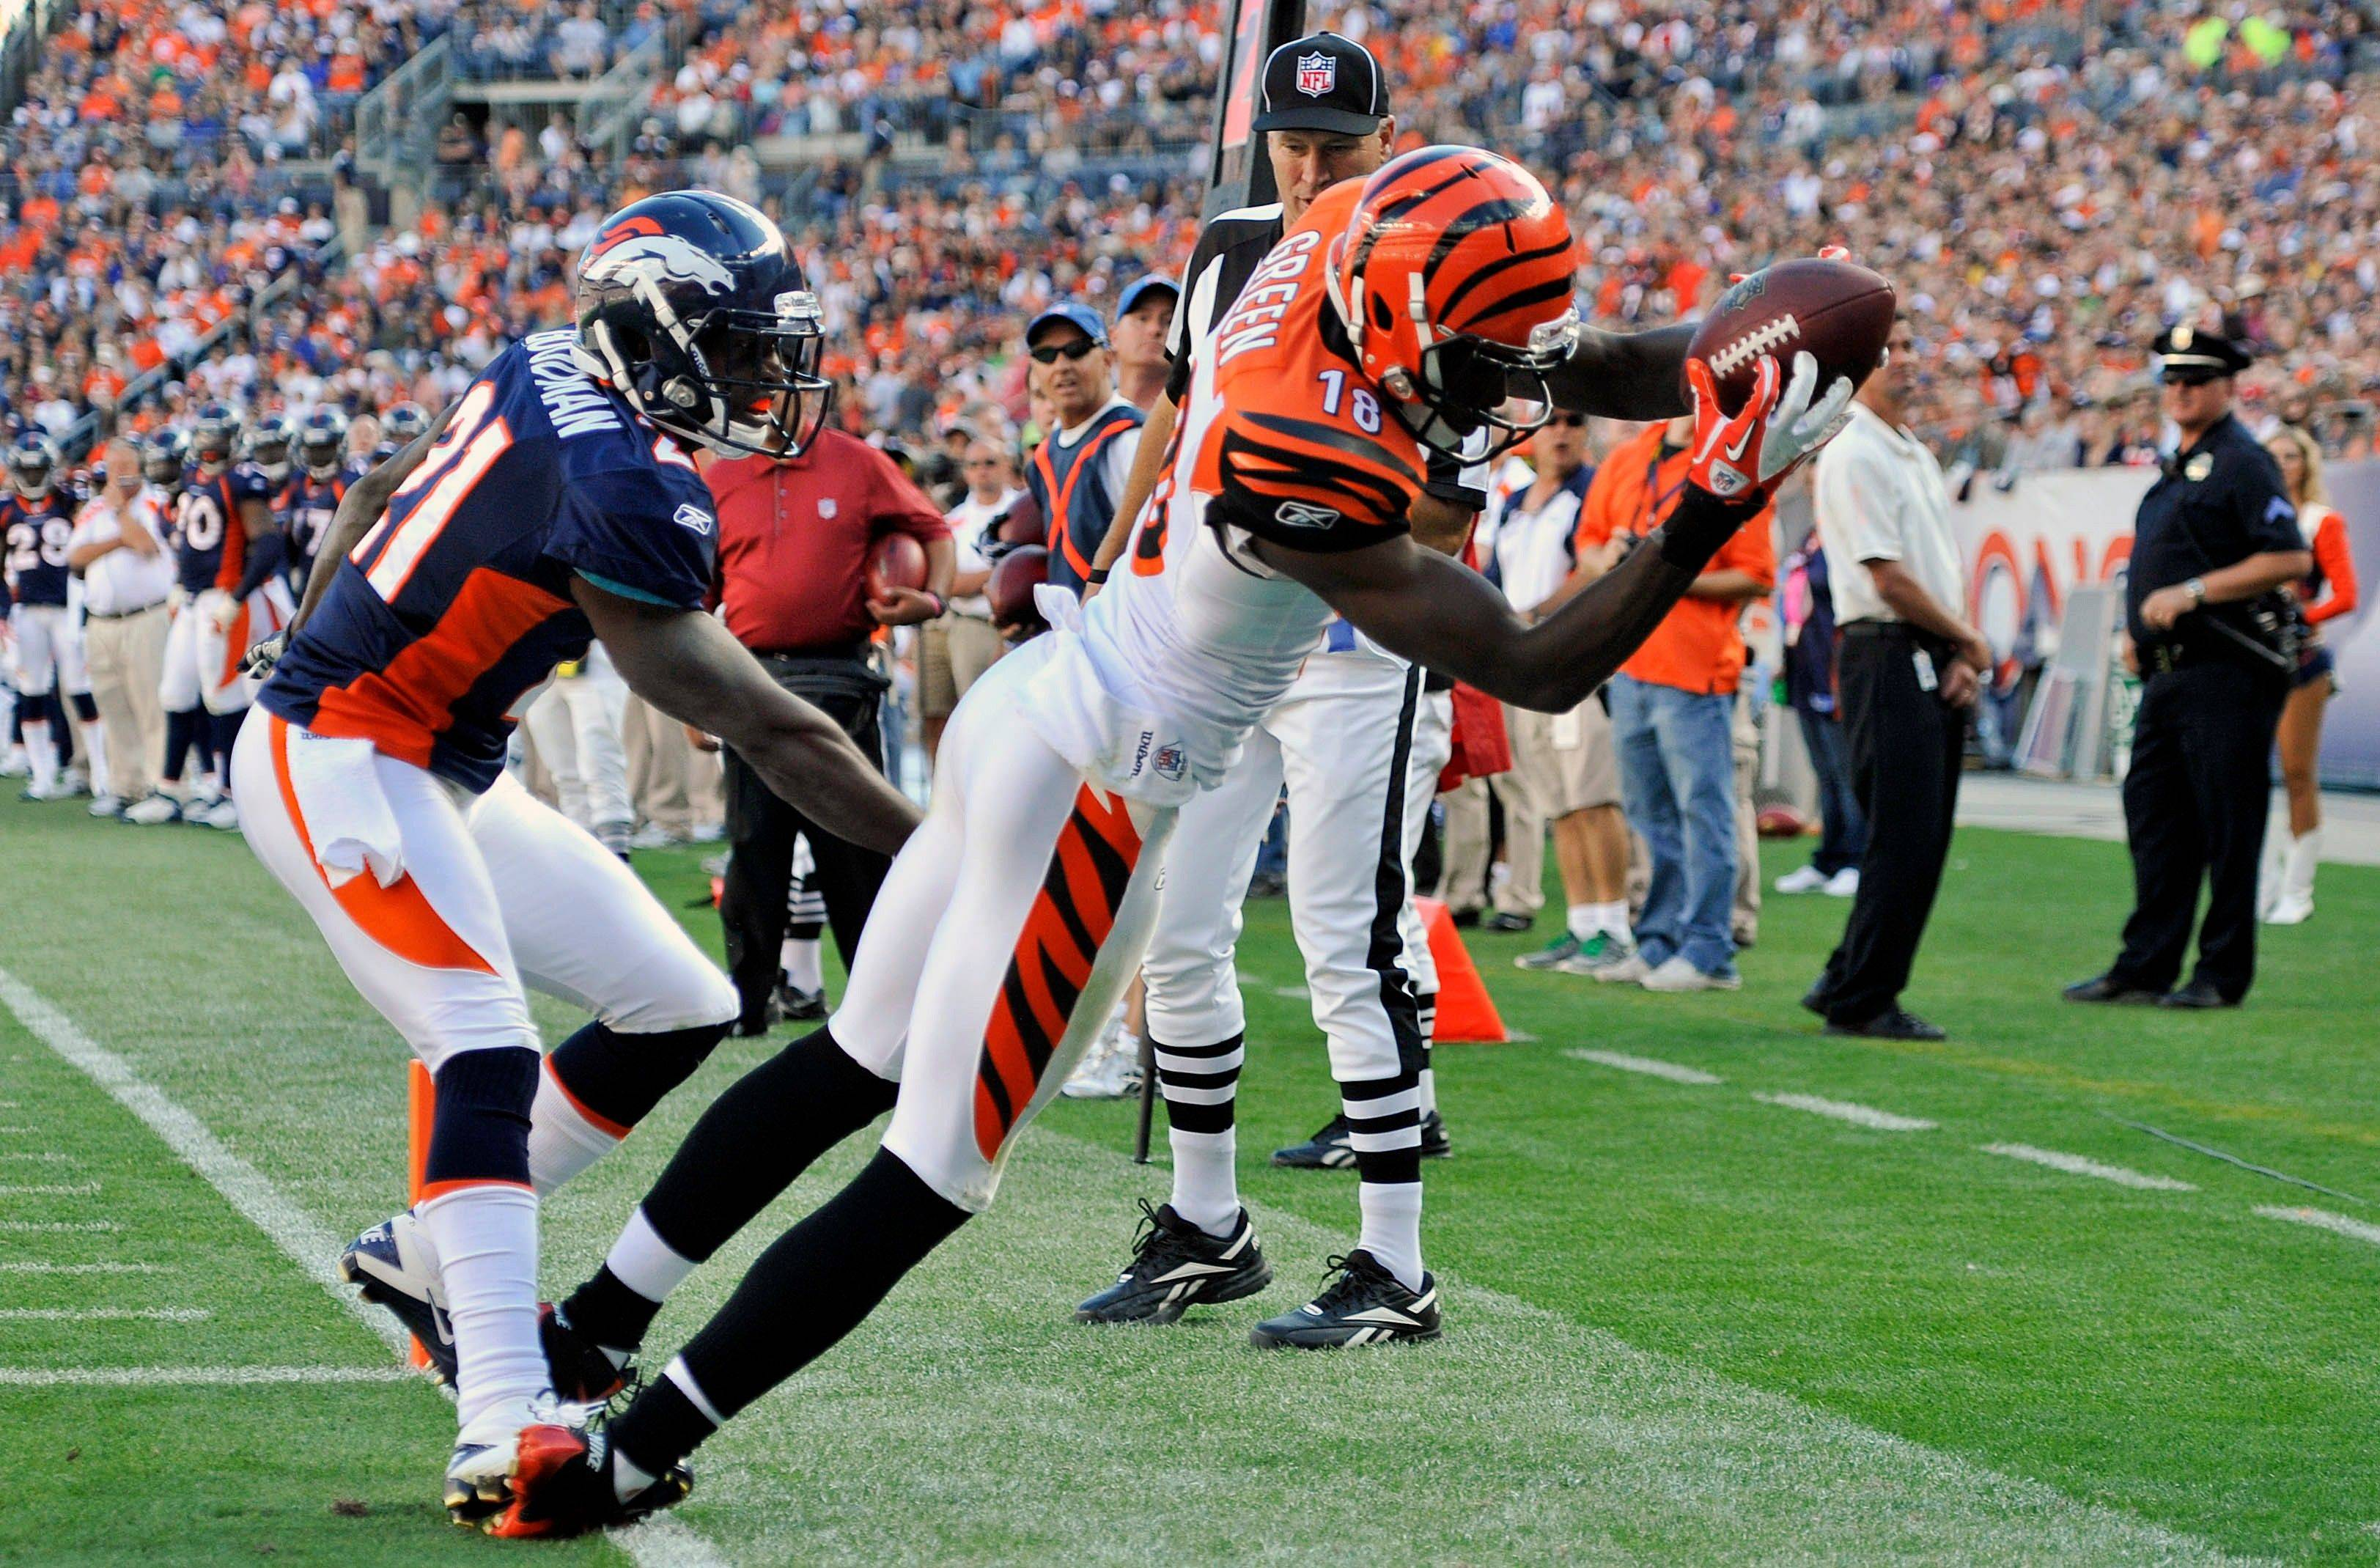 Cincinnati Bengals wide receiver A.J. Green (18) could have another big weekend as the Bengals faces the 49ers.